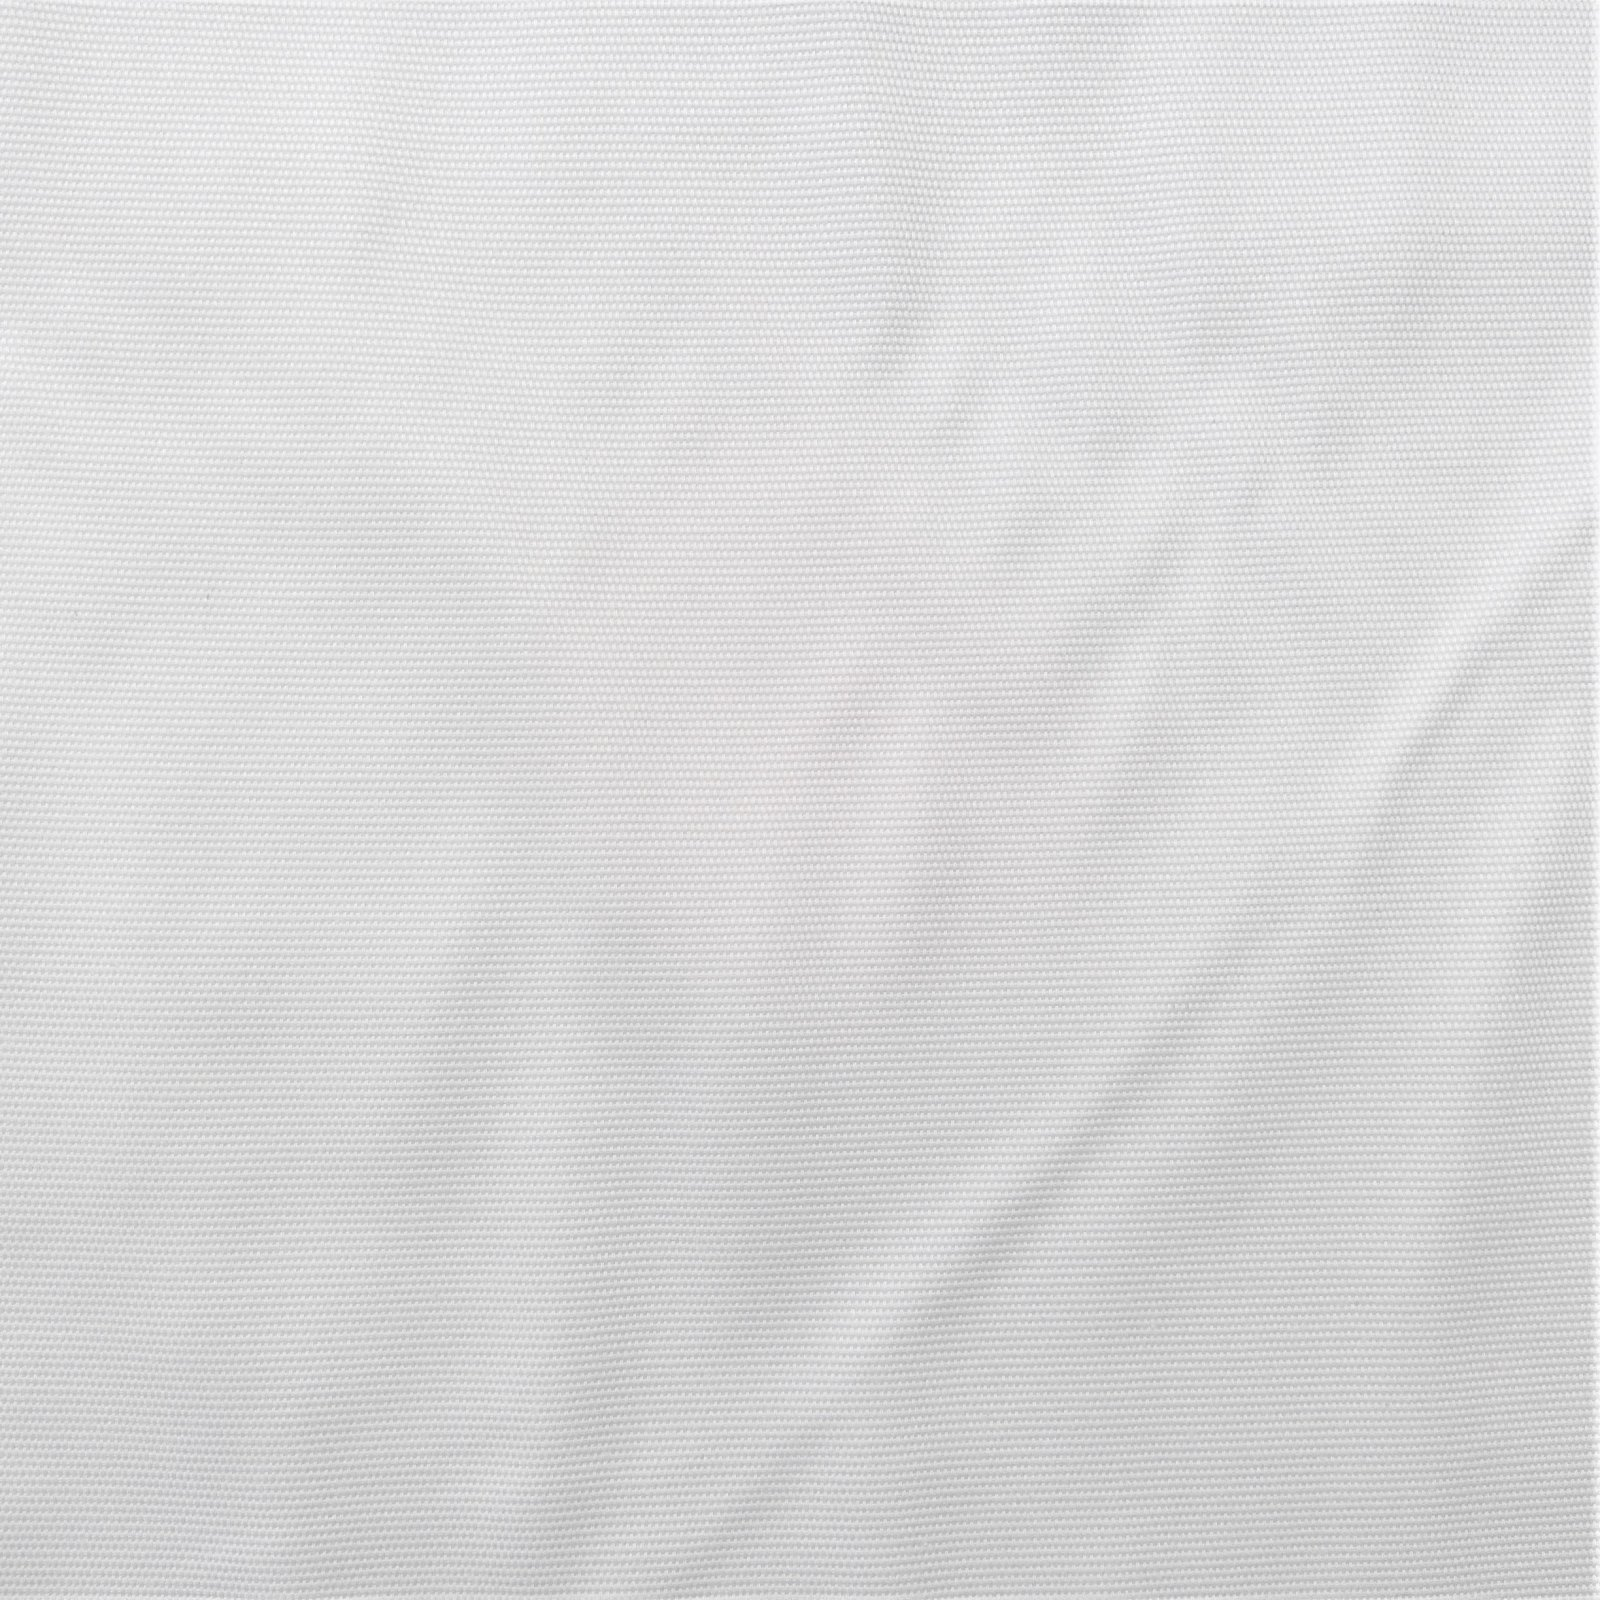 Canvas Solid 100% Cotton, Ivory